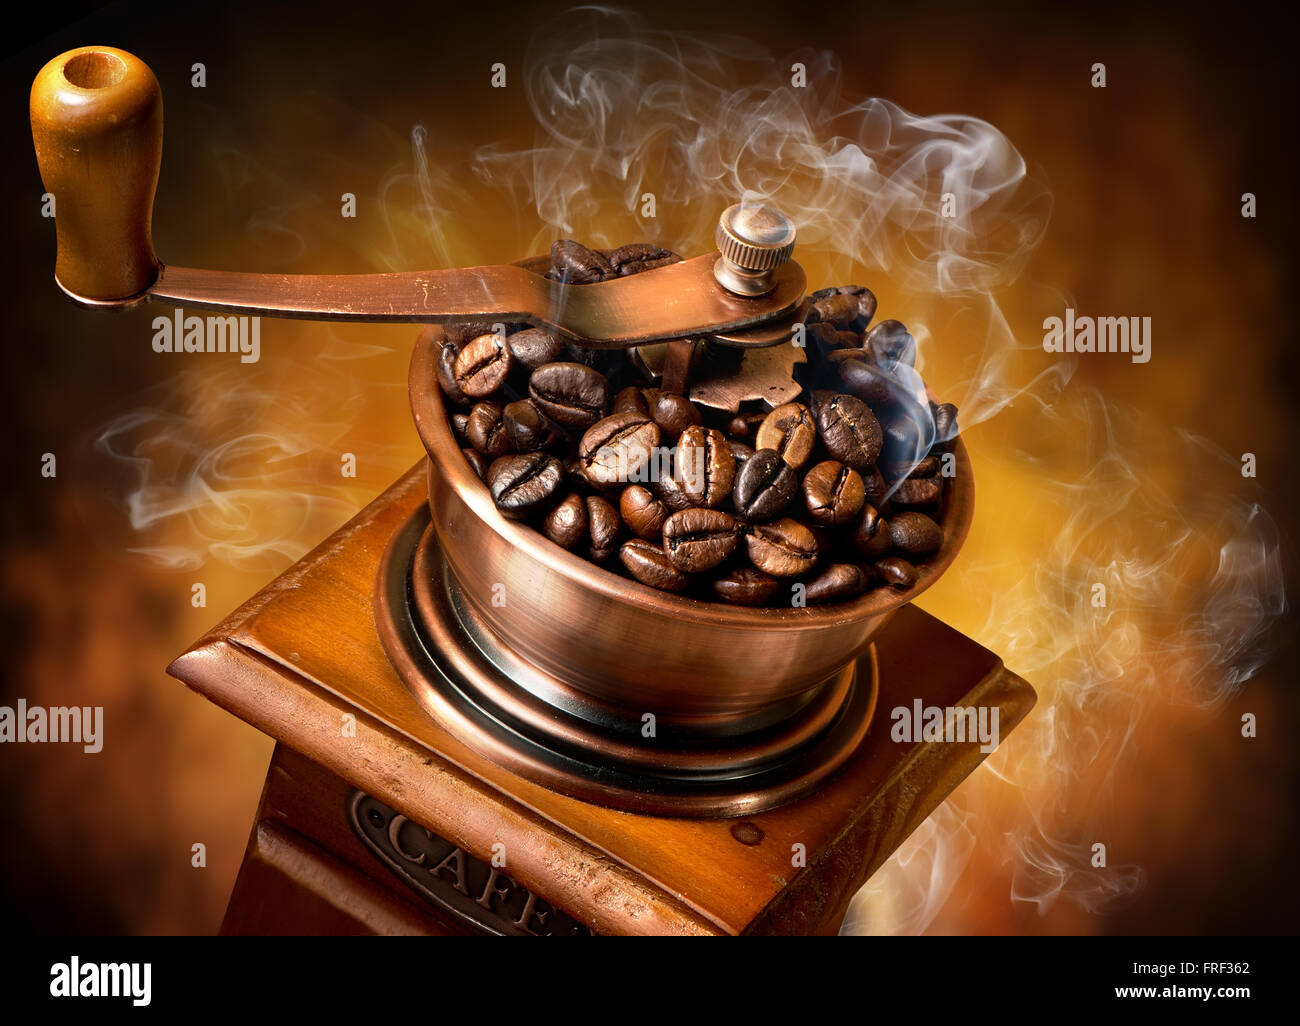 Old wooden coffee-mill on an orange background - Stock Image